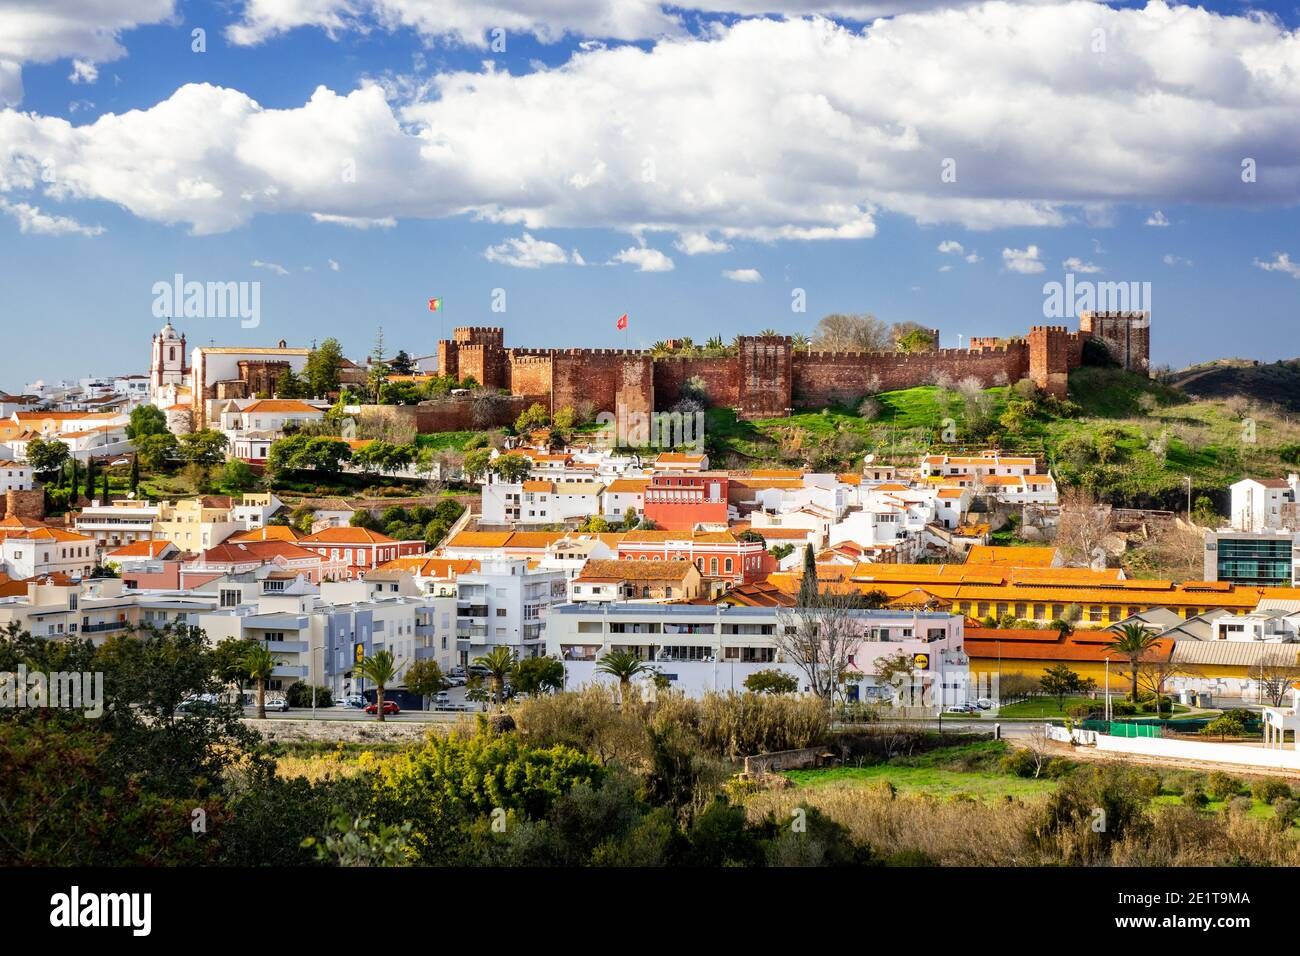 portuguese-castle-of-silves-a-moorish-castle-castelo-de-silves-on-the-hill-above-the-city-of-silves-inland-on-the-algarve-portugal-2E1T9MA.jpg